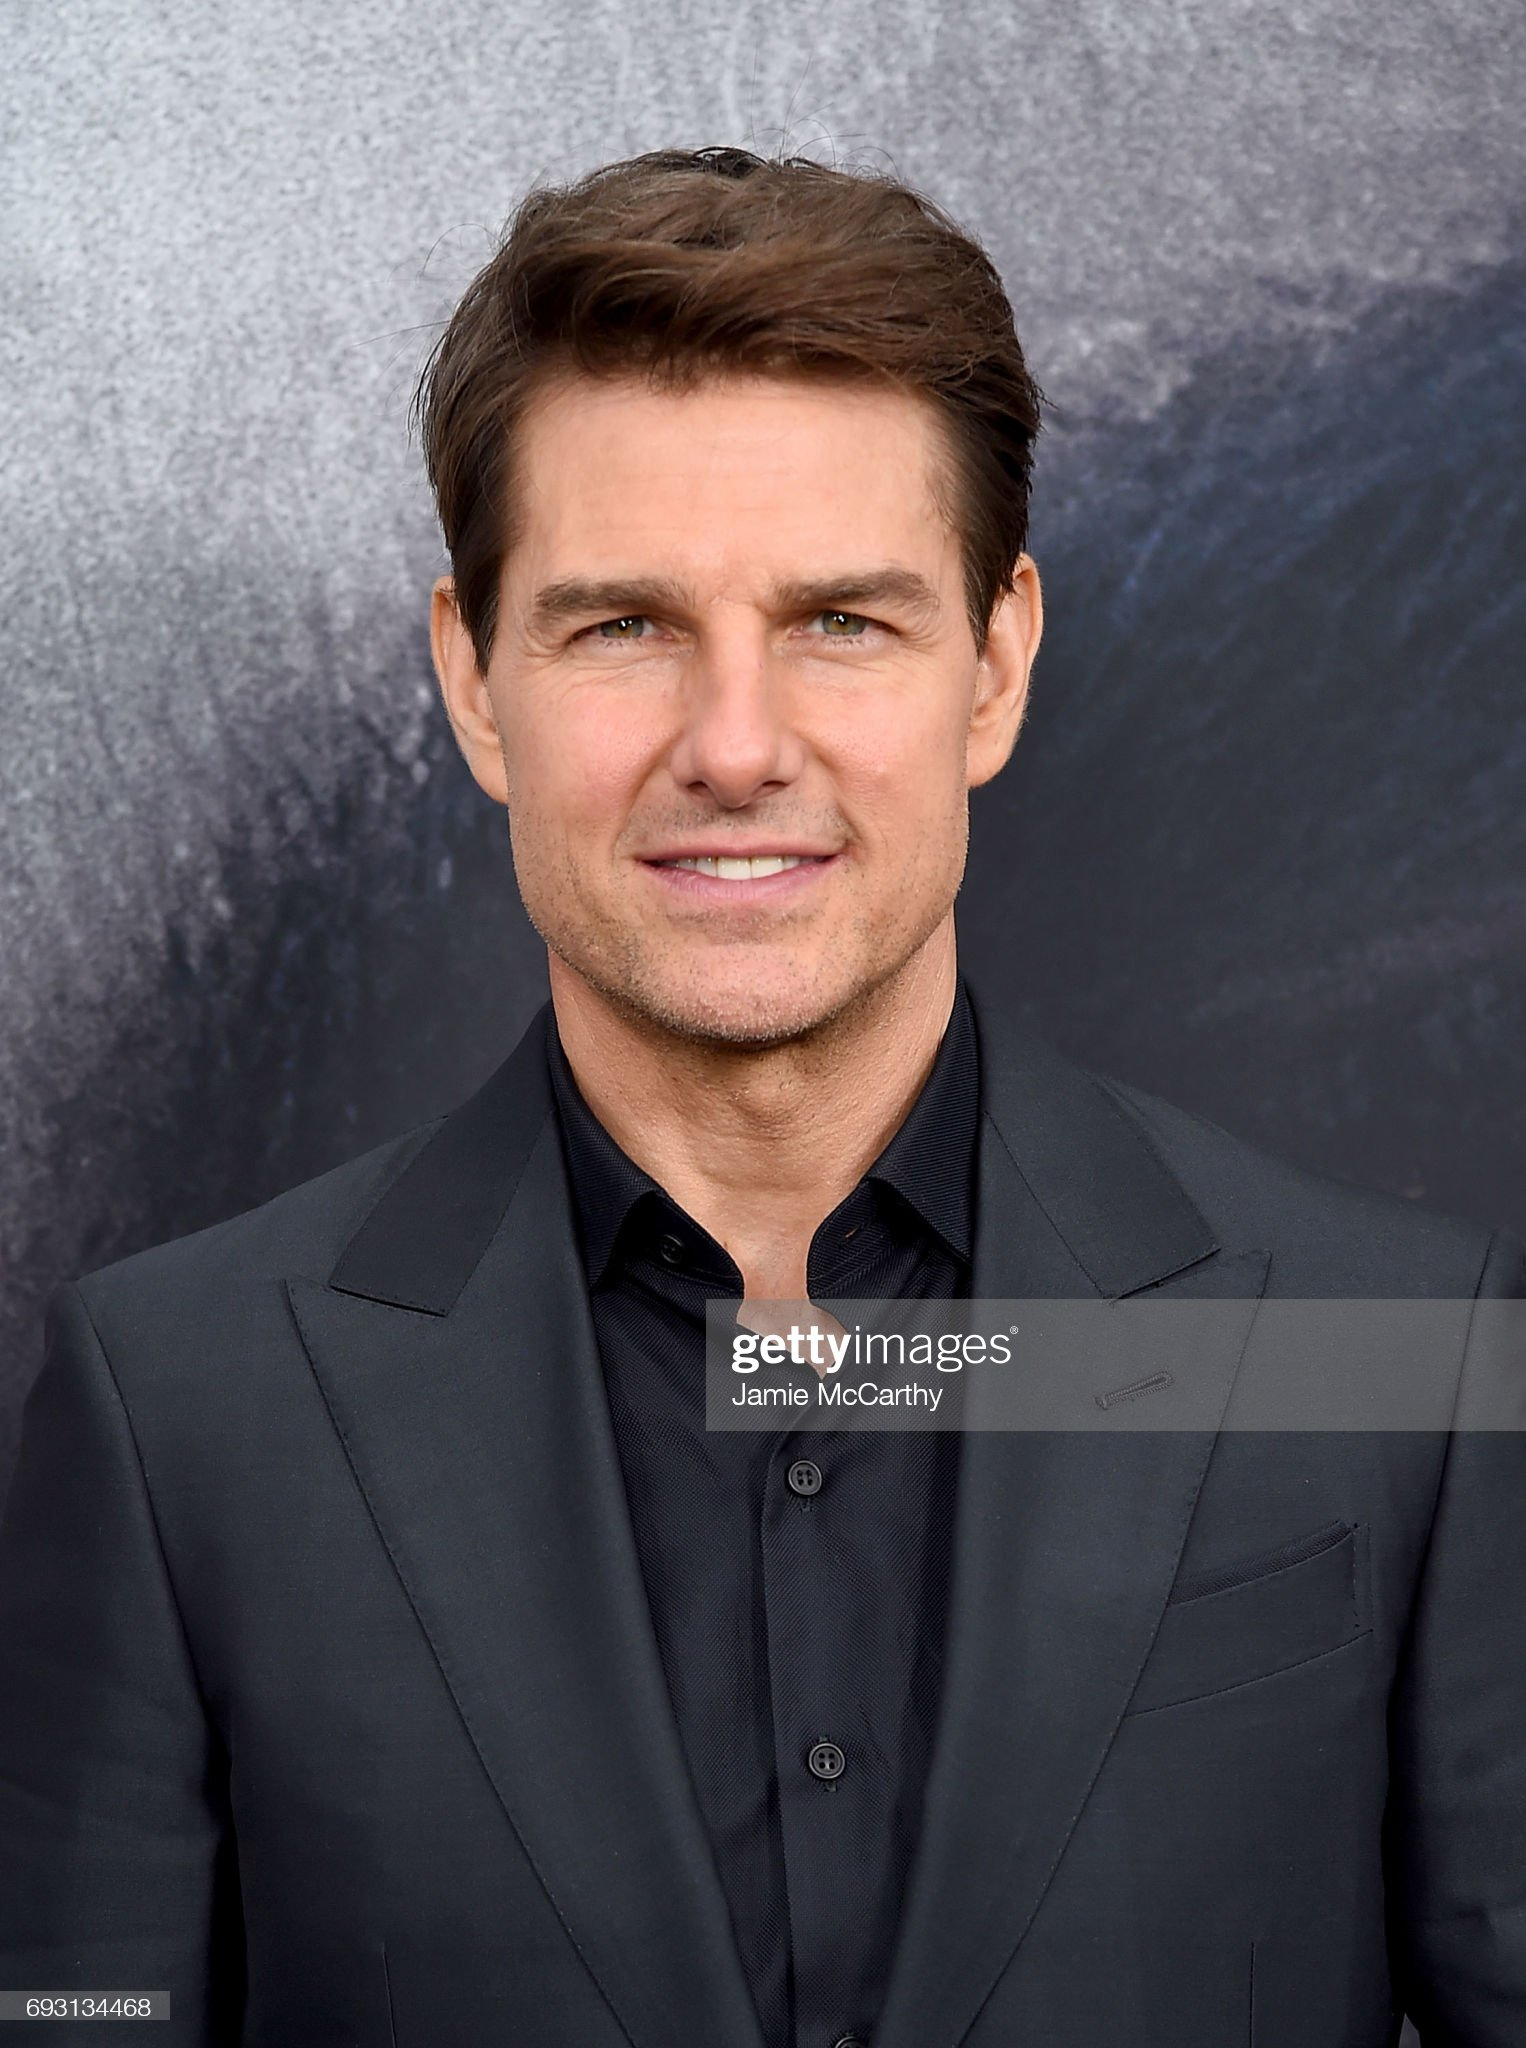 Tom Cruise (Galería de fotos) Tom-cruise-attends-the-the-mummy-new-york-fan-eventat-amc-loews-on-picture-id693134468?s=2048x2048